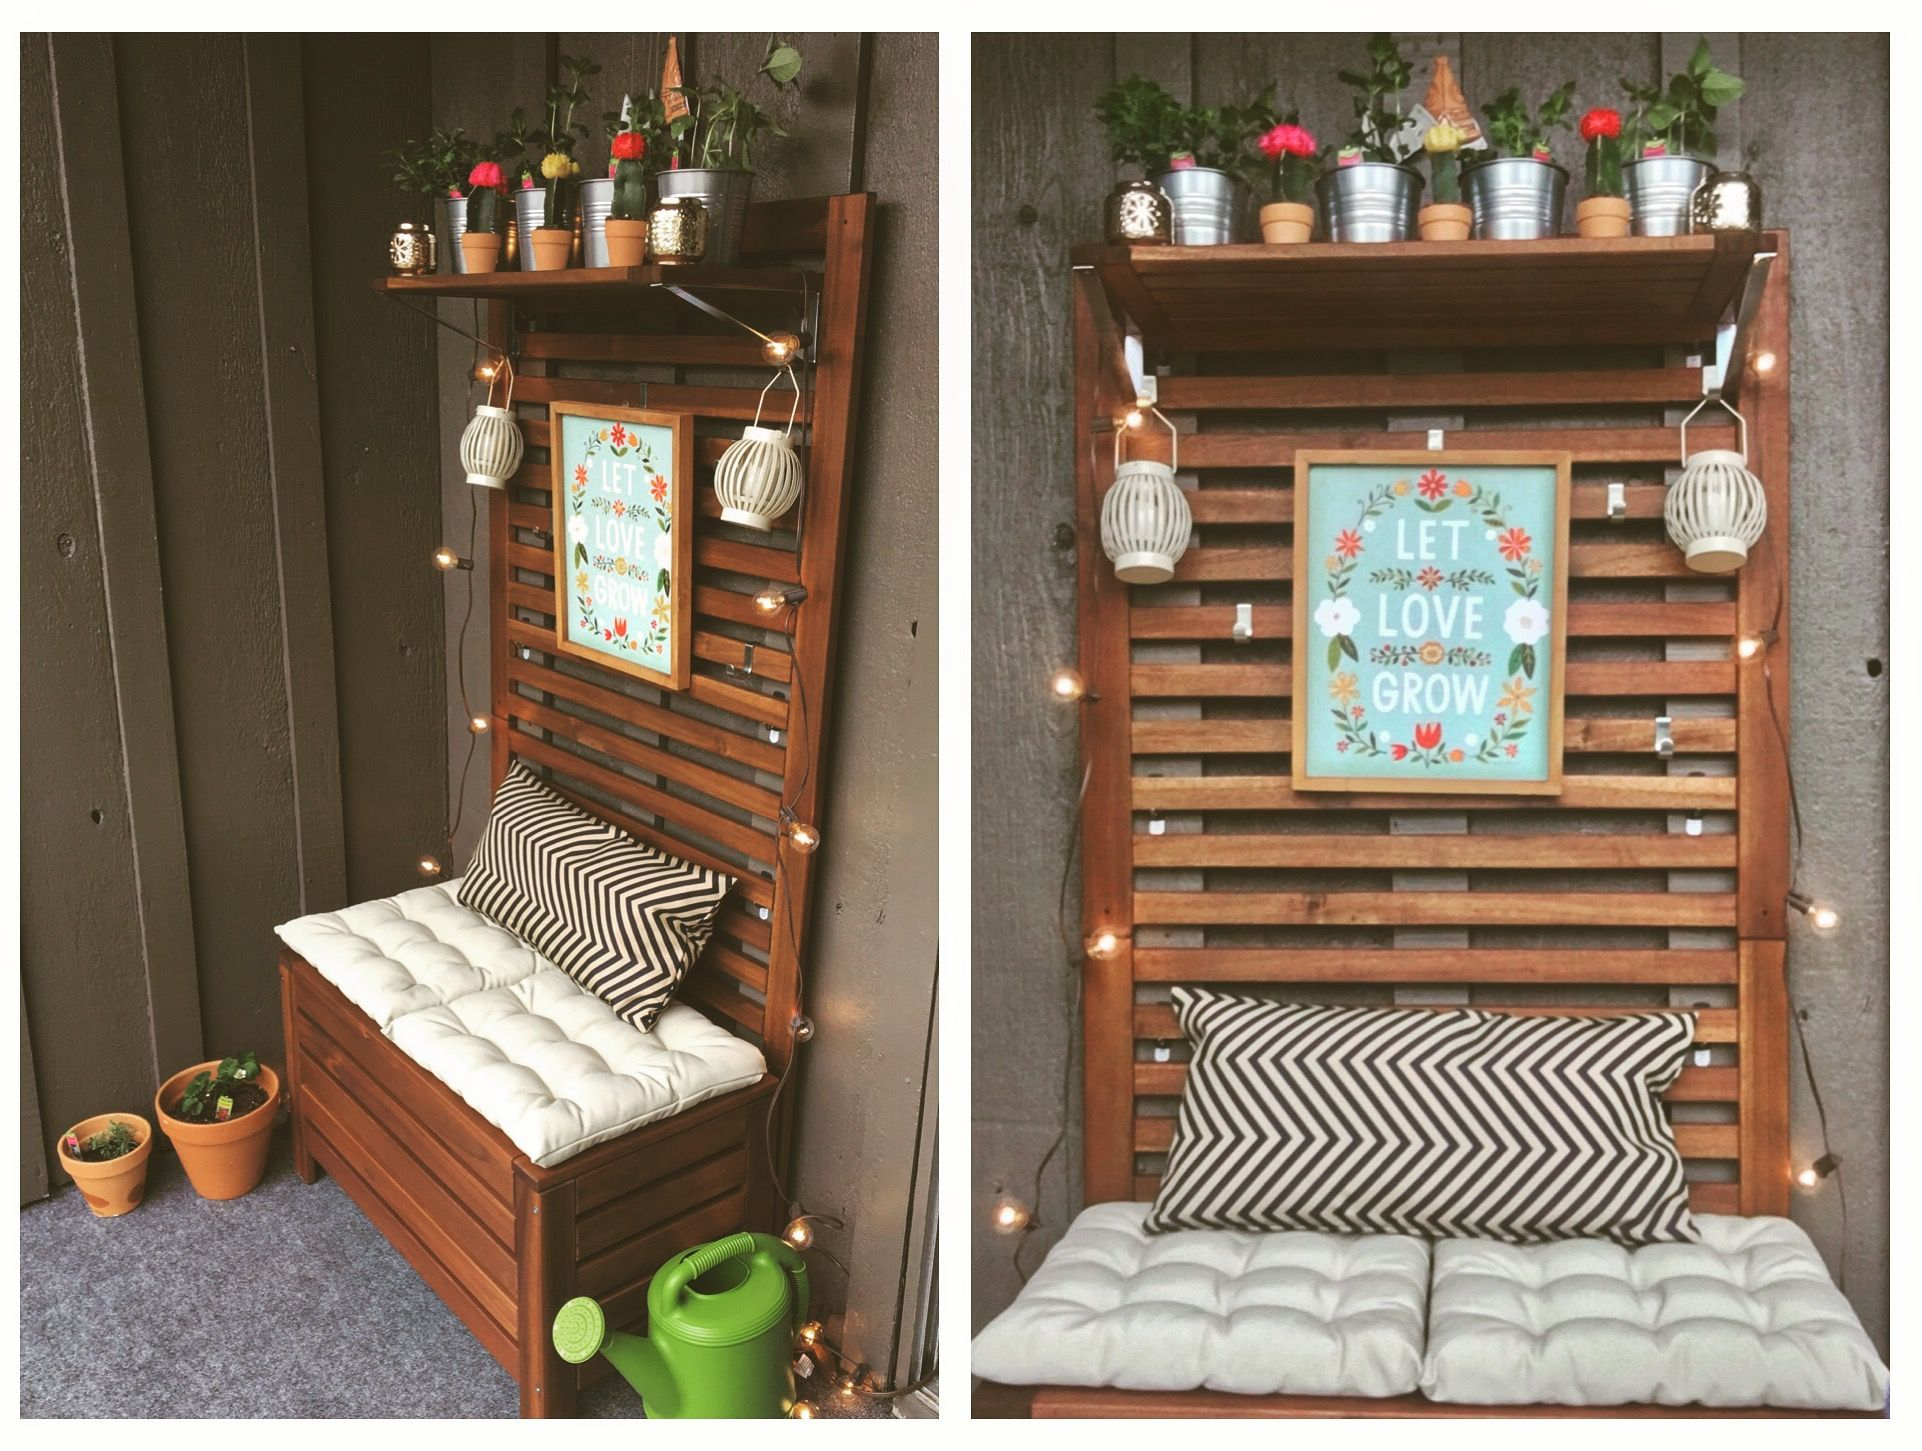 My Cutesy Patio Project Using The ÄPPLARÖ Bench And Wall Panel From IKEA.